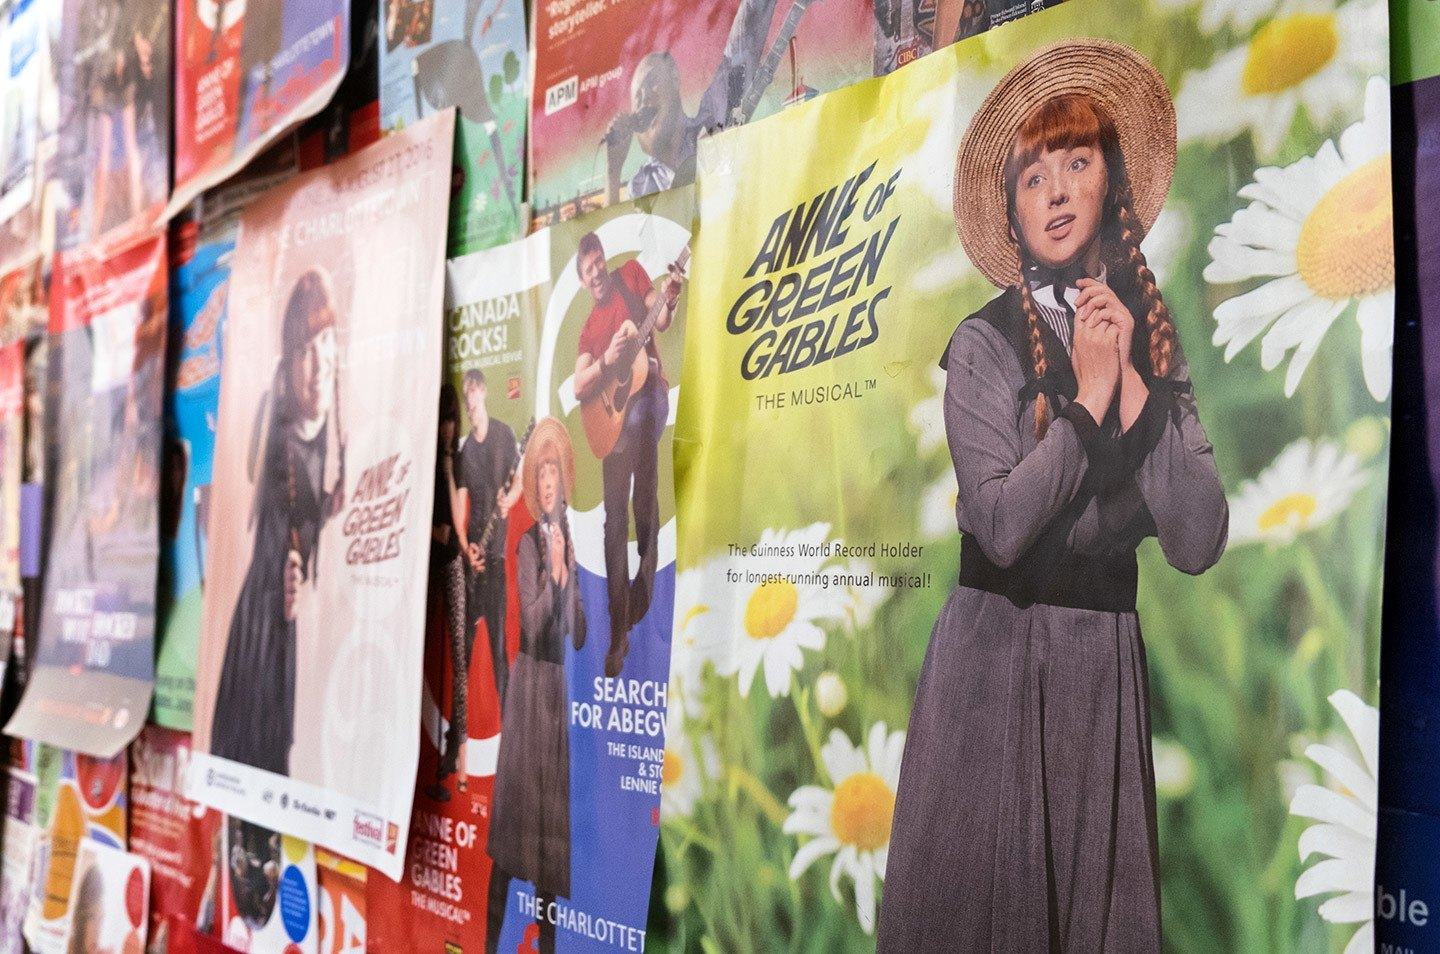 Anne of Green Gables – The Musical, Charlottetown, Prince Edward Island